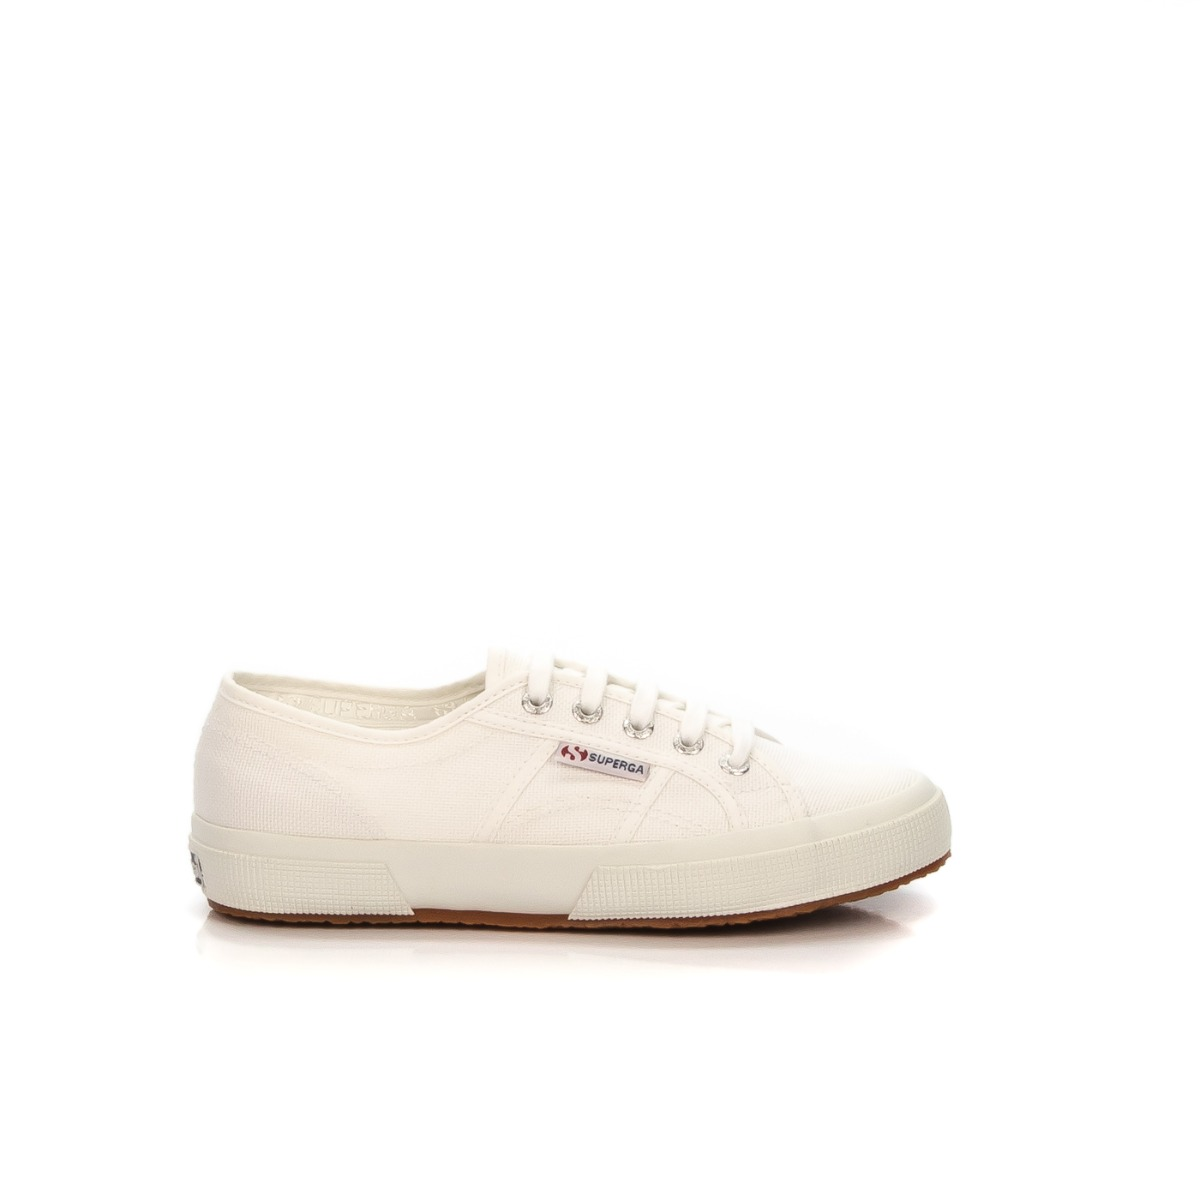 SUPERGA Quick DONNA view SNEAKERS S000010 BIANCO 901 · UZFqO